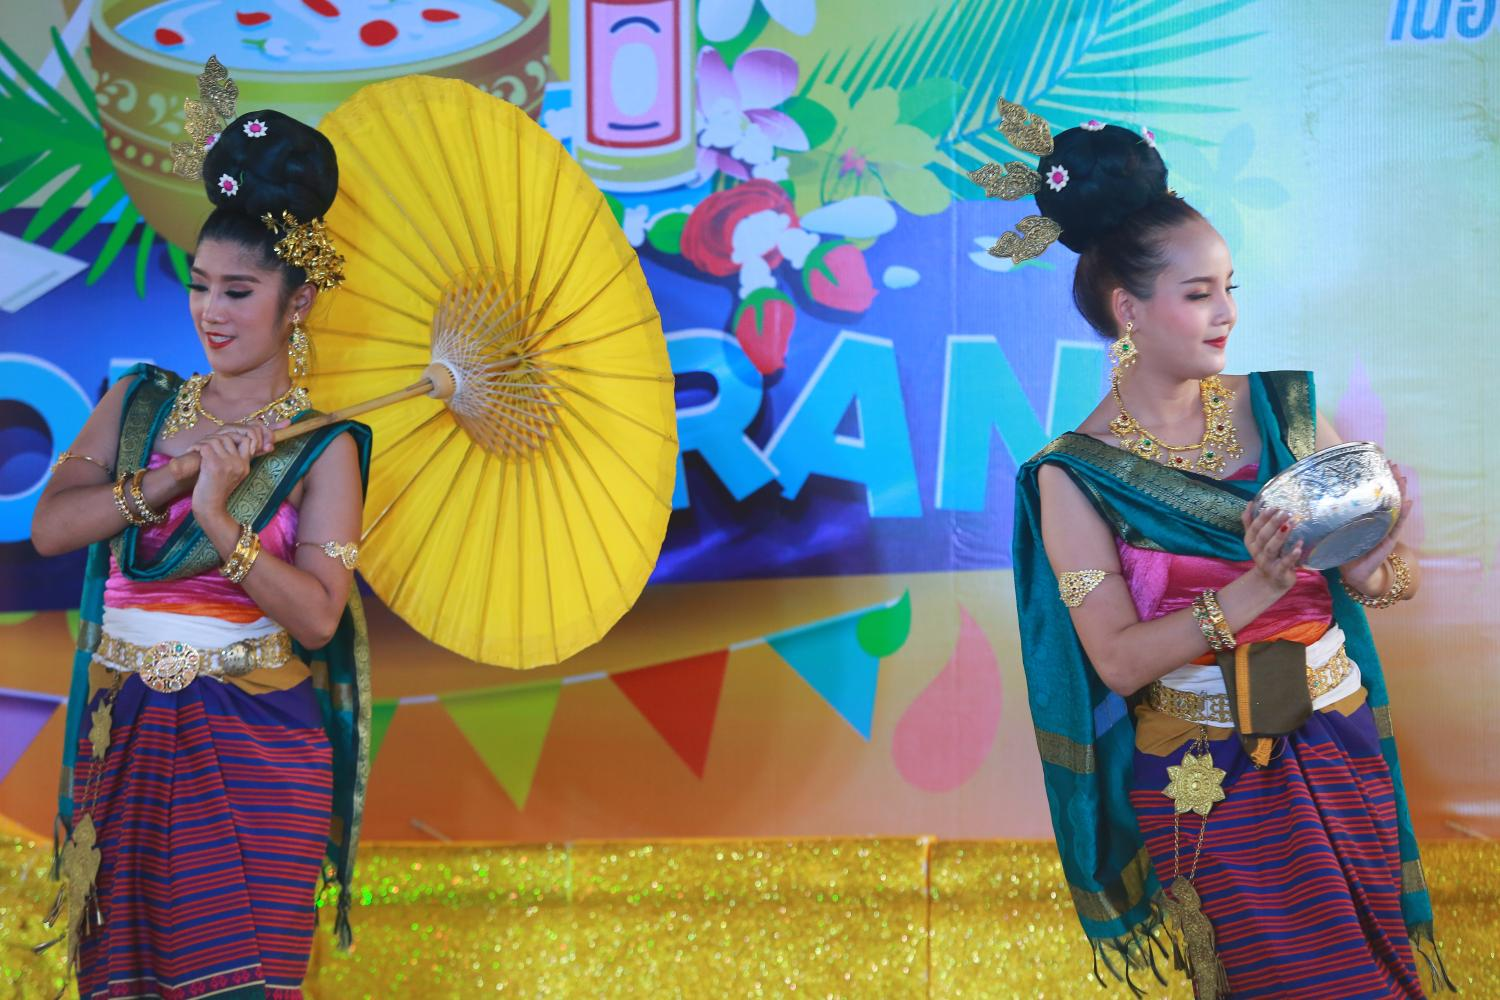 Bangkok Metropolitan Administration held a water pouring ceremony and dances to honour the elderly during Songkran with National Elderly Day and Thai Family Day, taking place on April 13 and 14.(Photo by Somchai Poomlard)